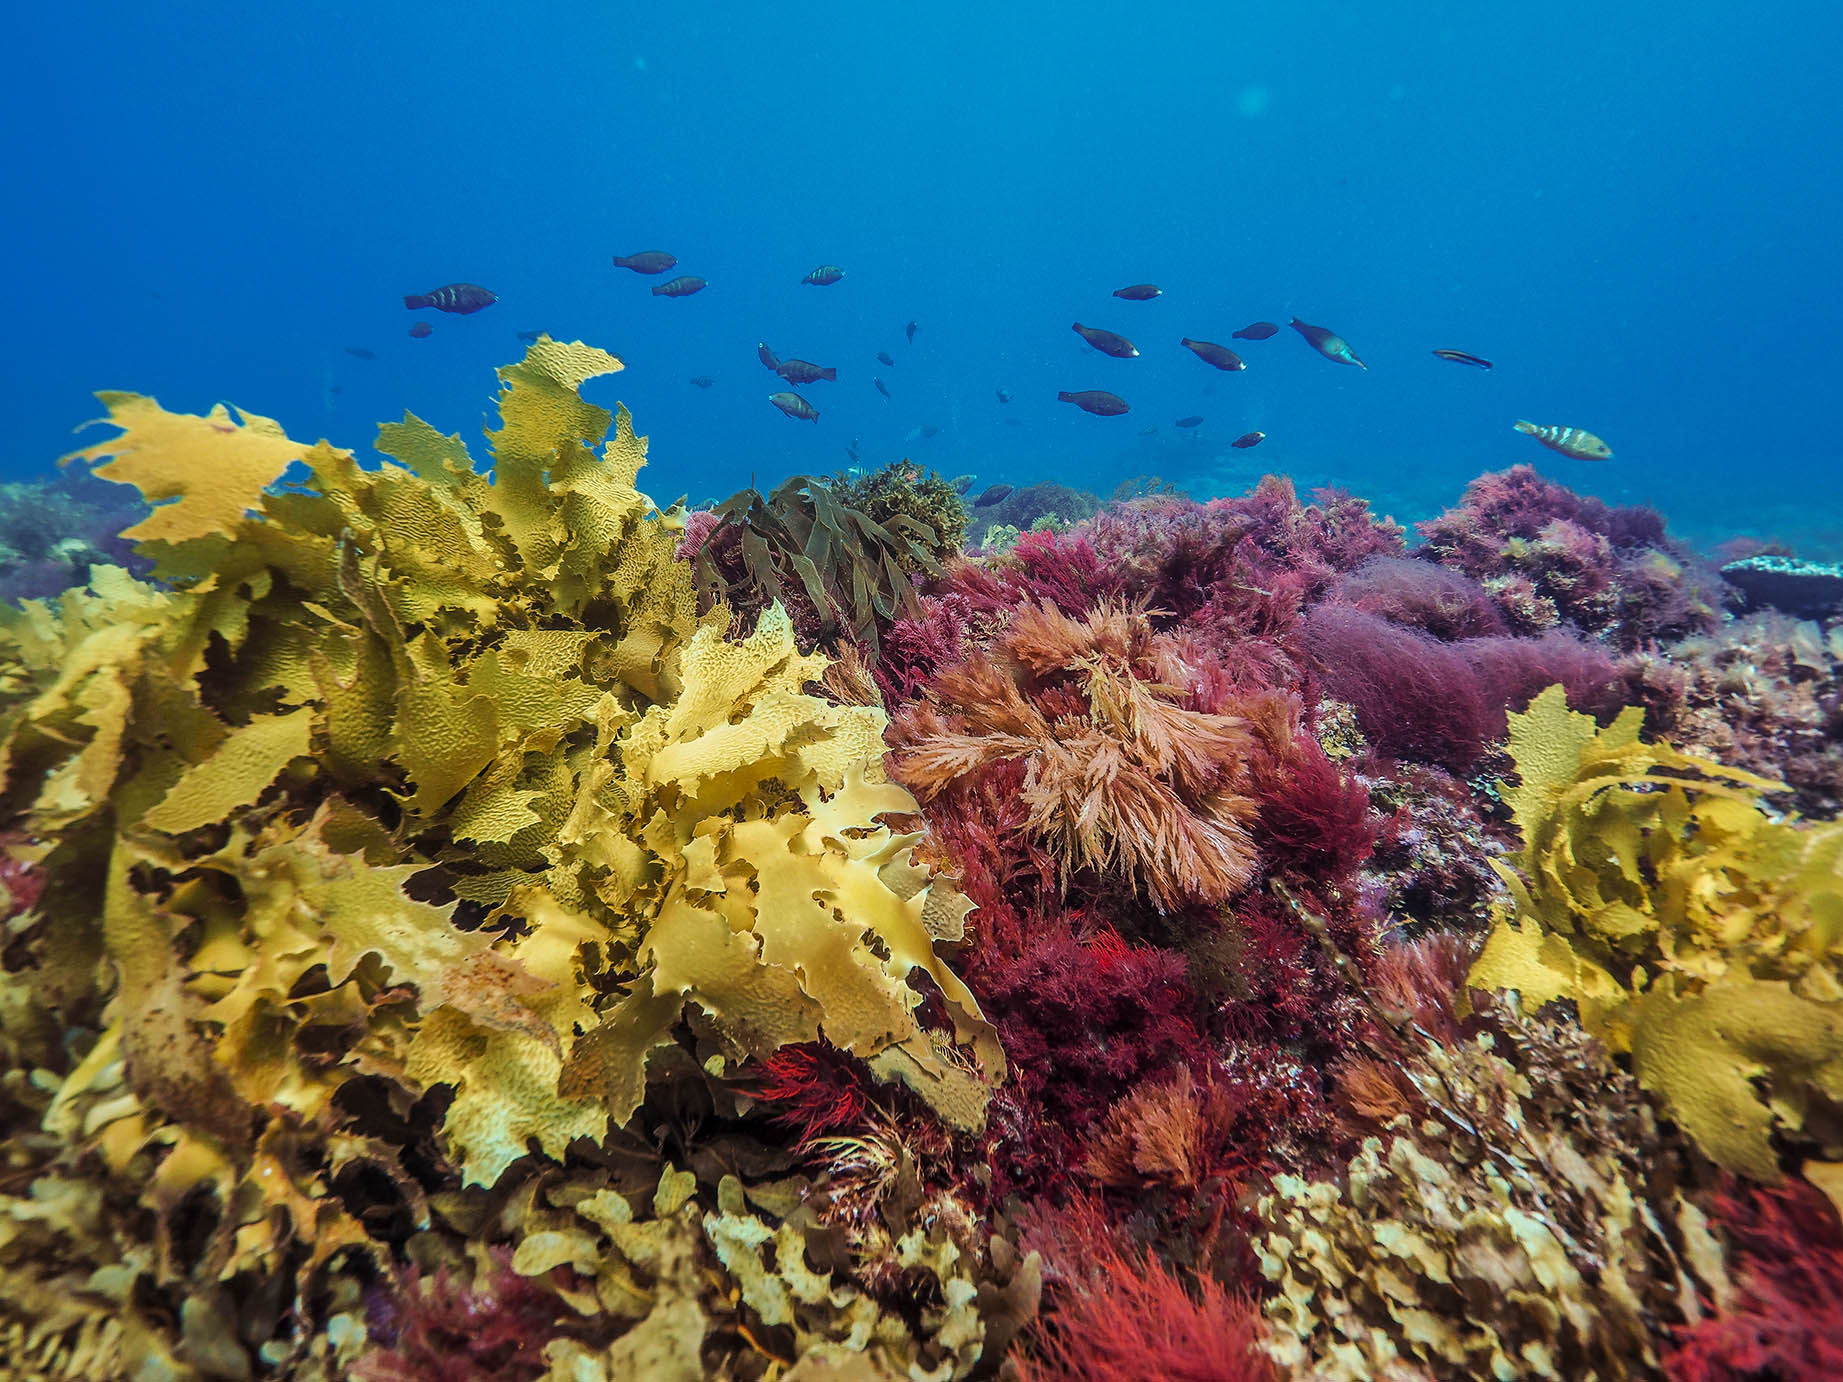 The Great Southern Reef is a biodiversity hotspot spanning 8,000kms across Southern Australia. Image credit Joan Costa